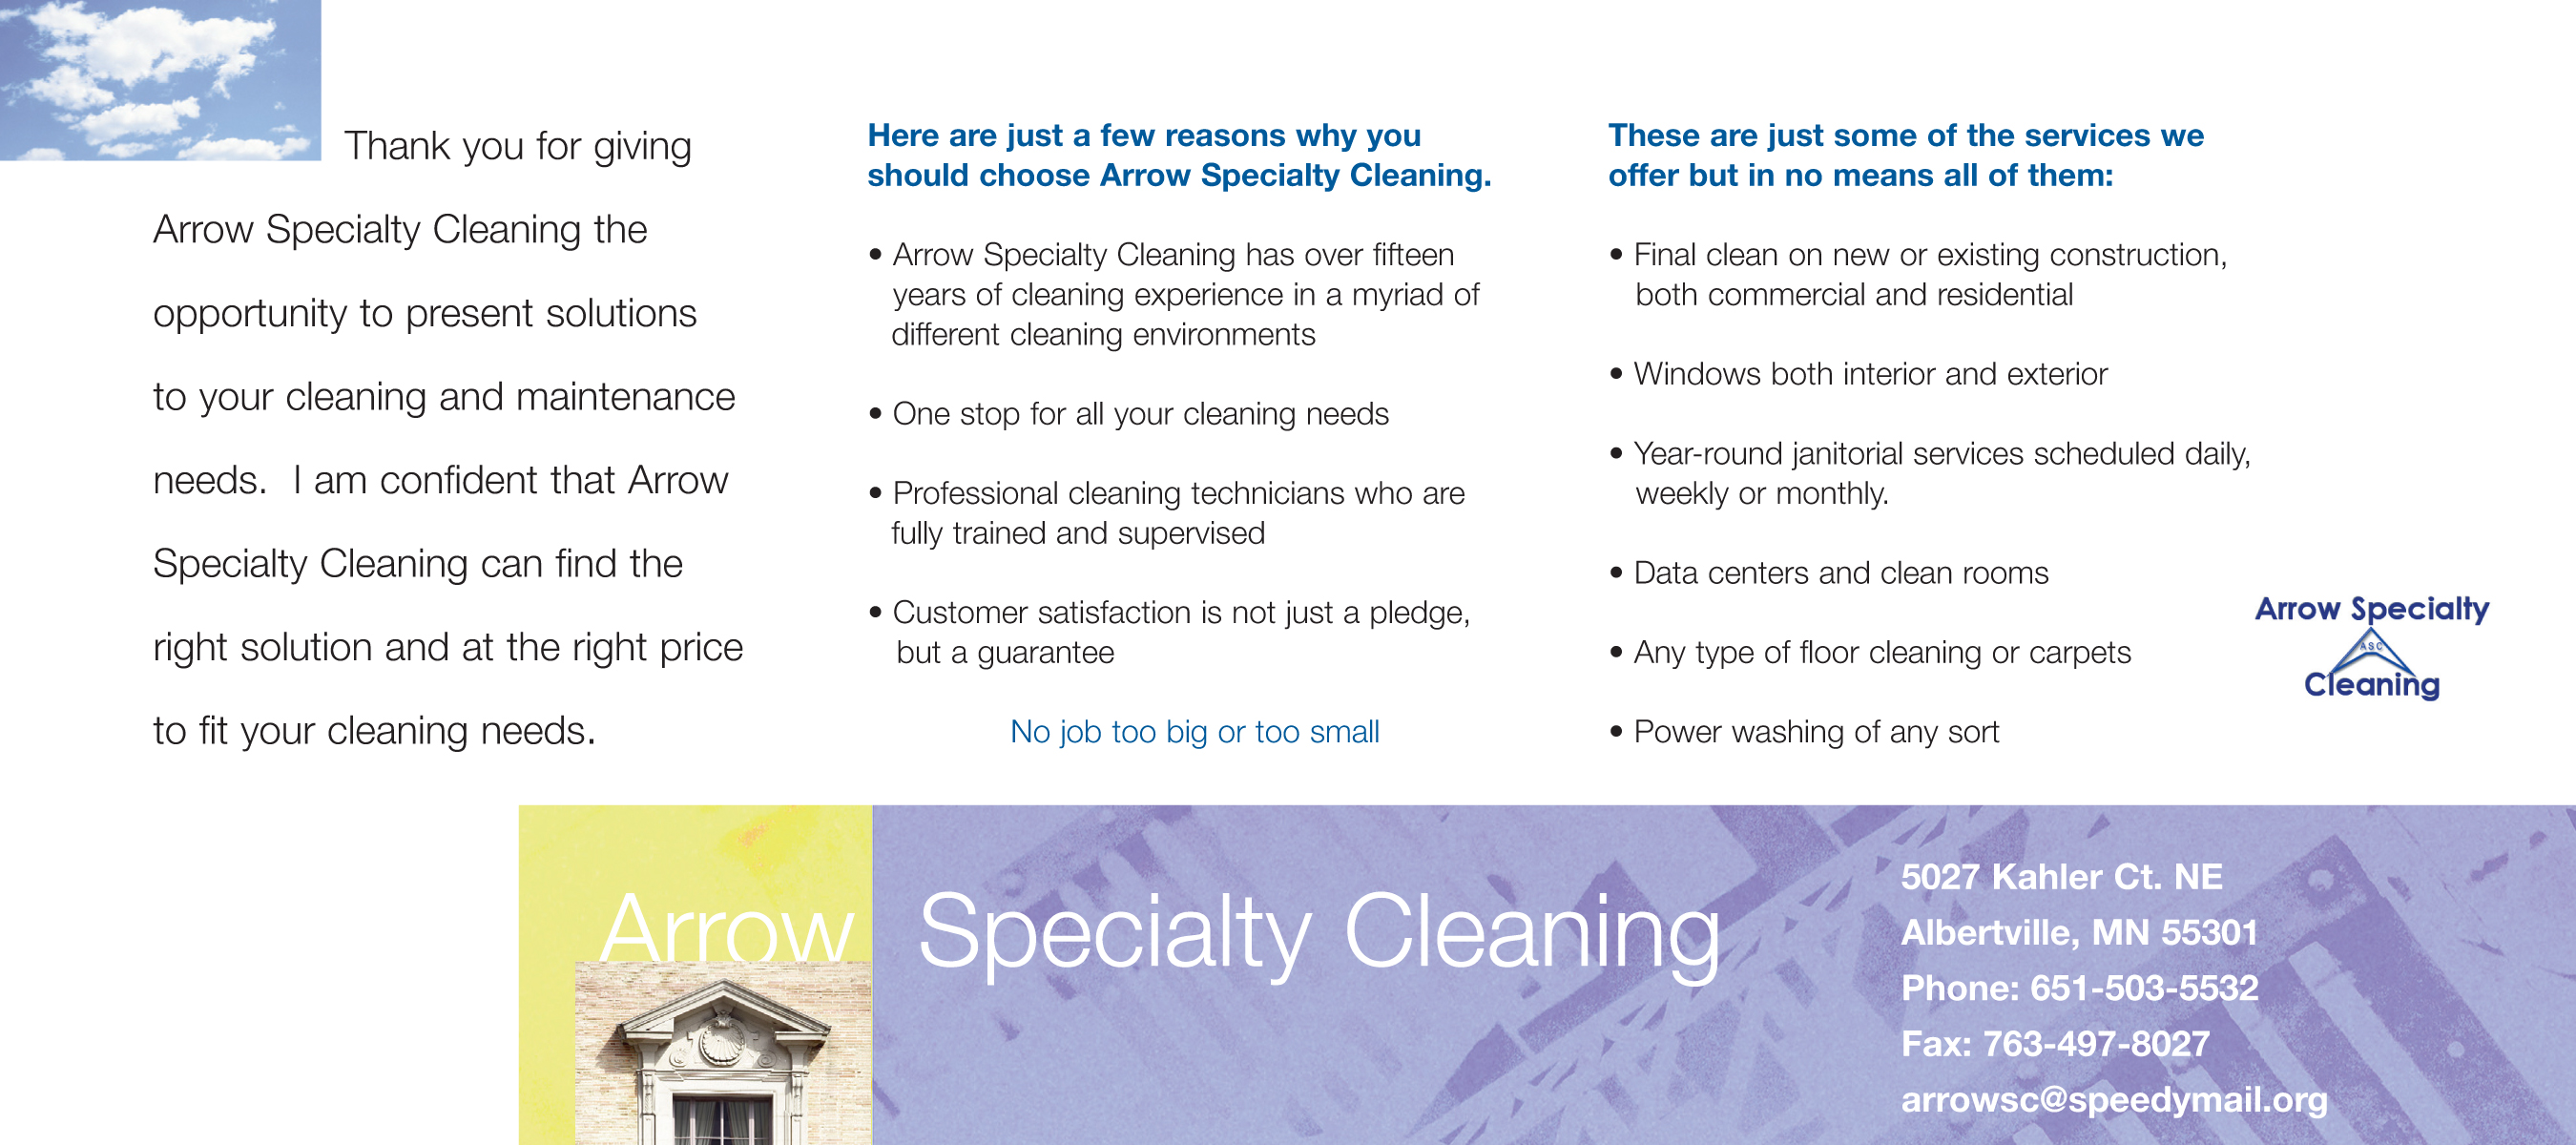 Arrow Specialty Cleaning Inside.jpg